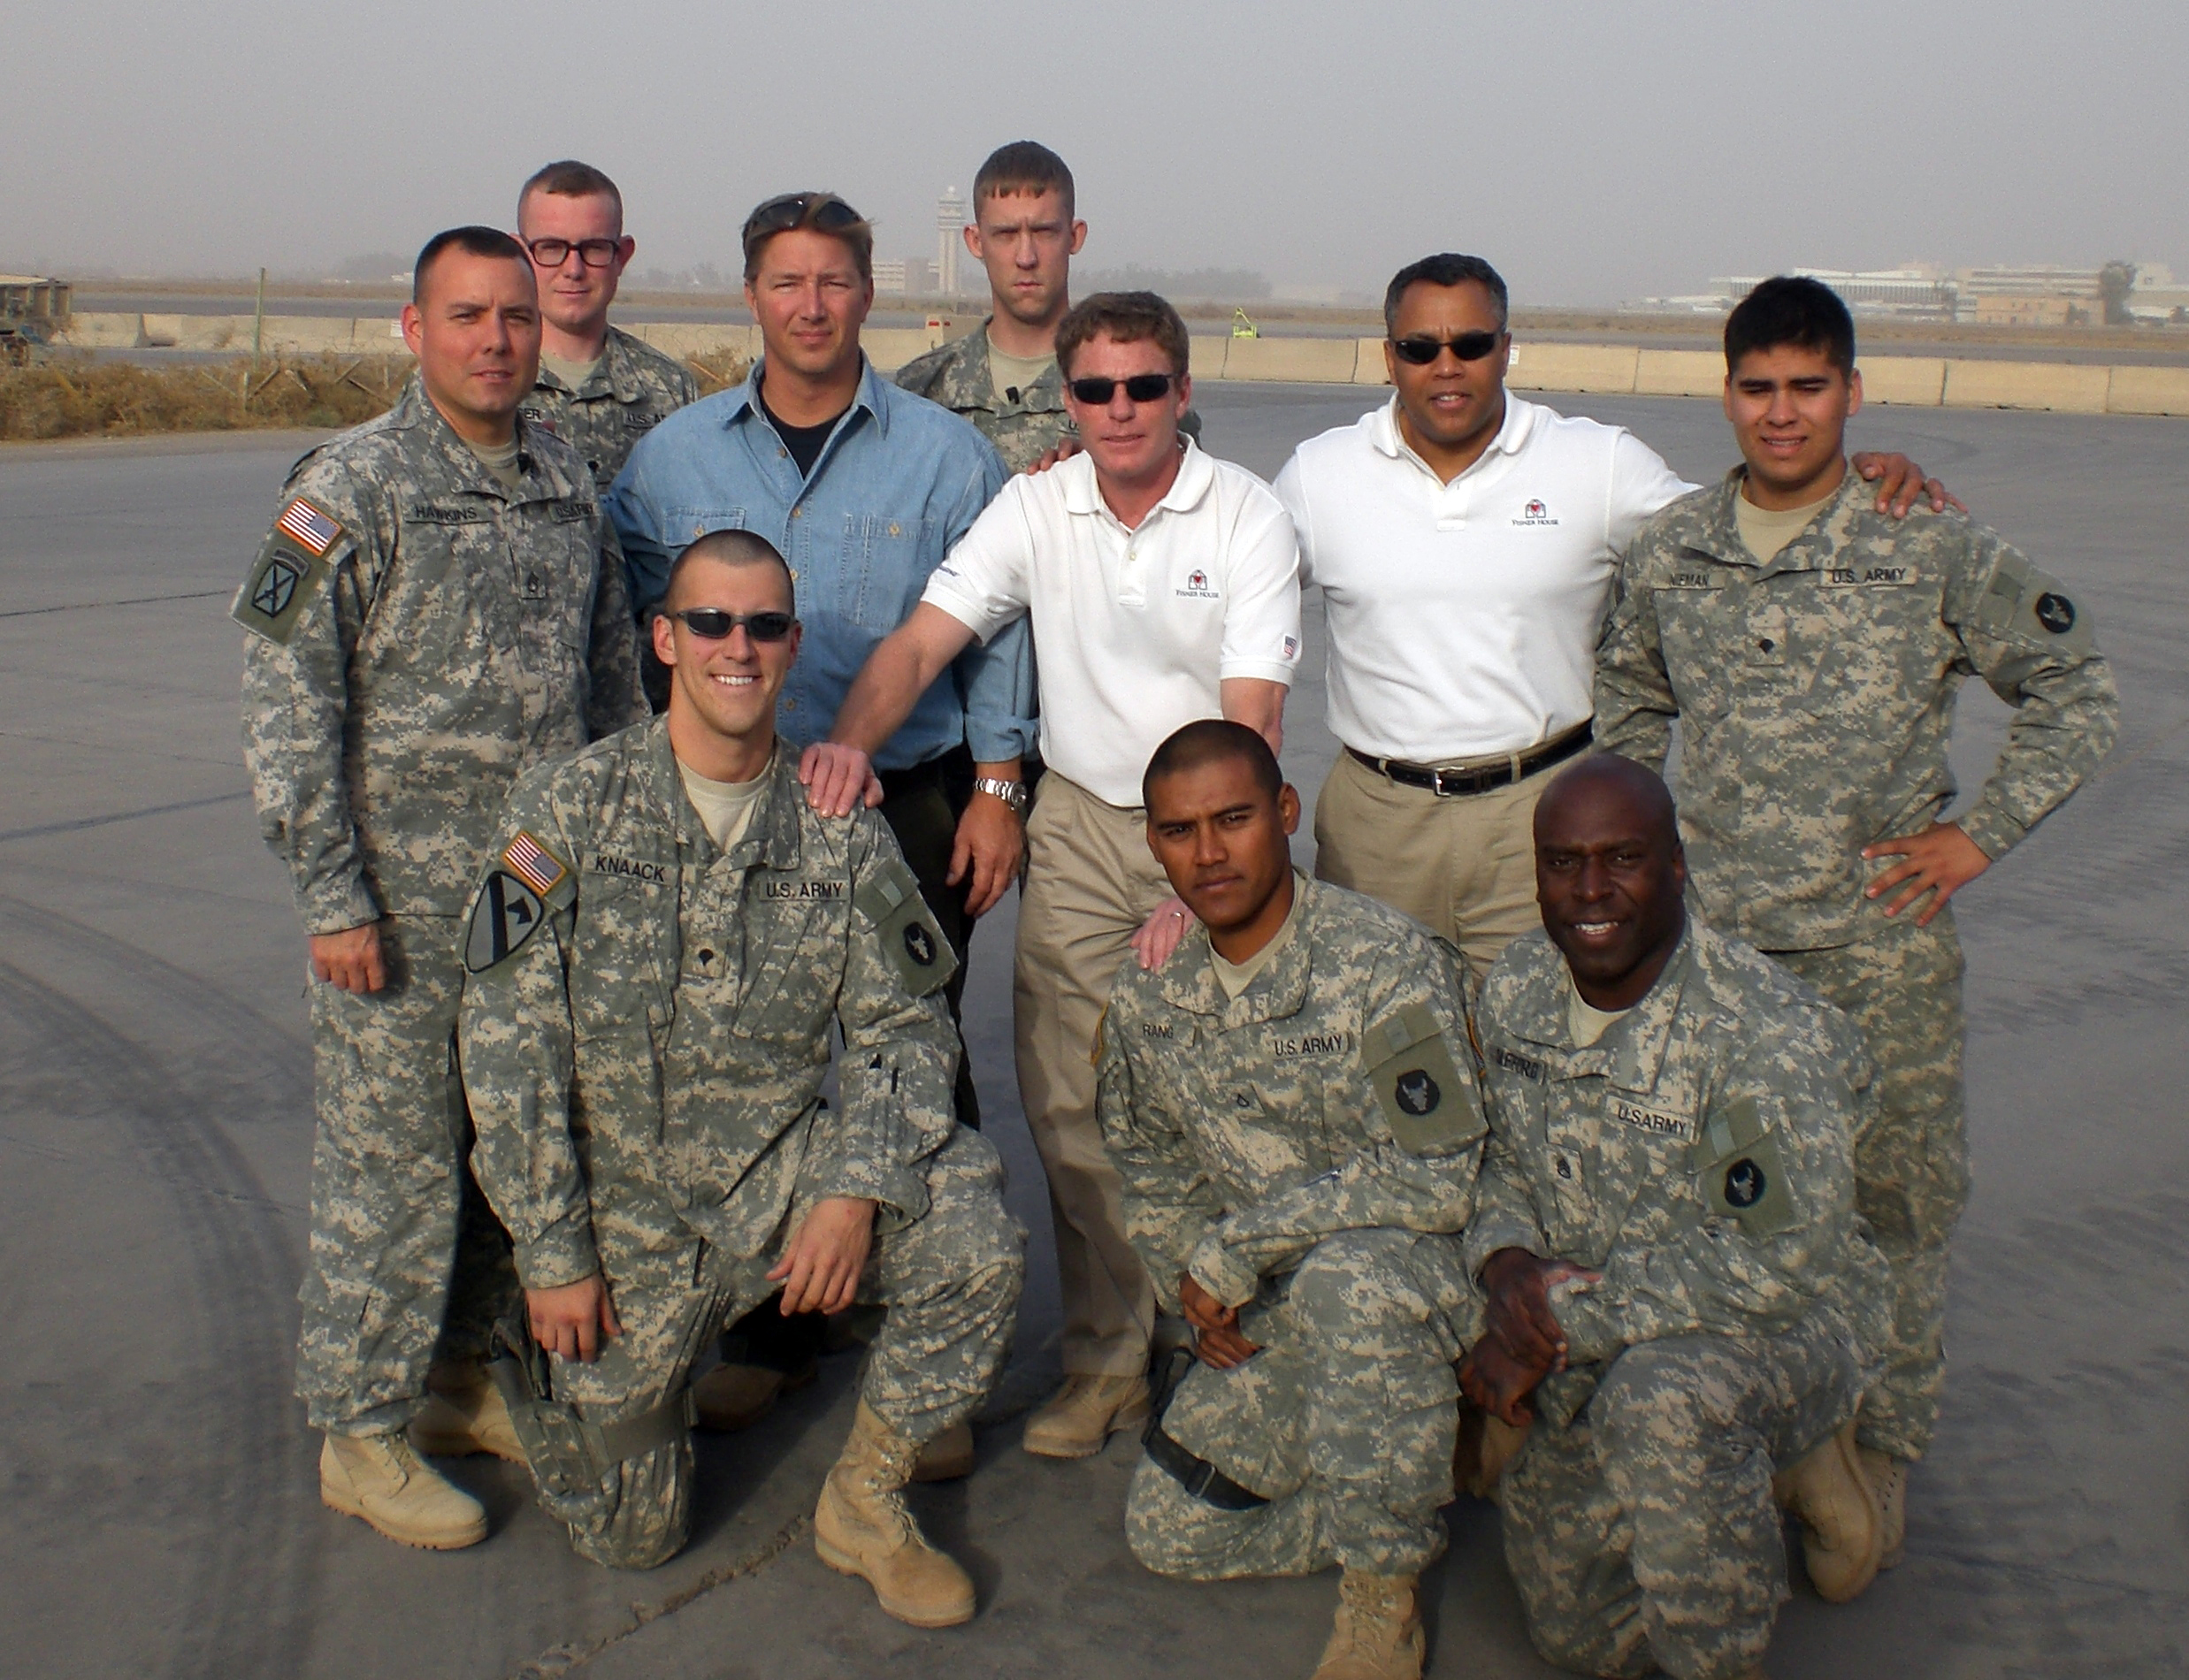 Mark Ranger Jones and Ken Fisher in Iraq